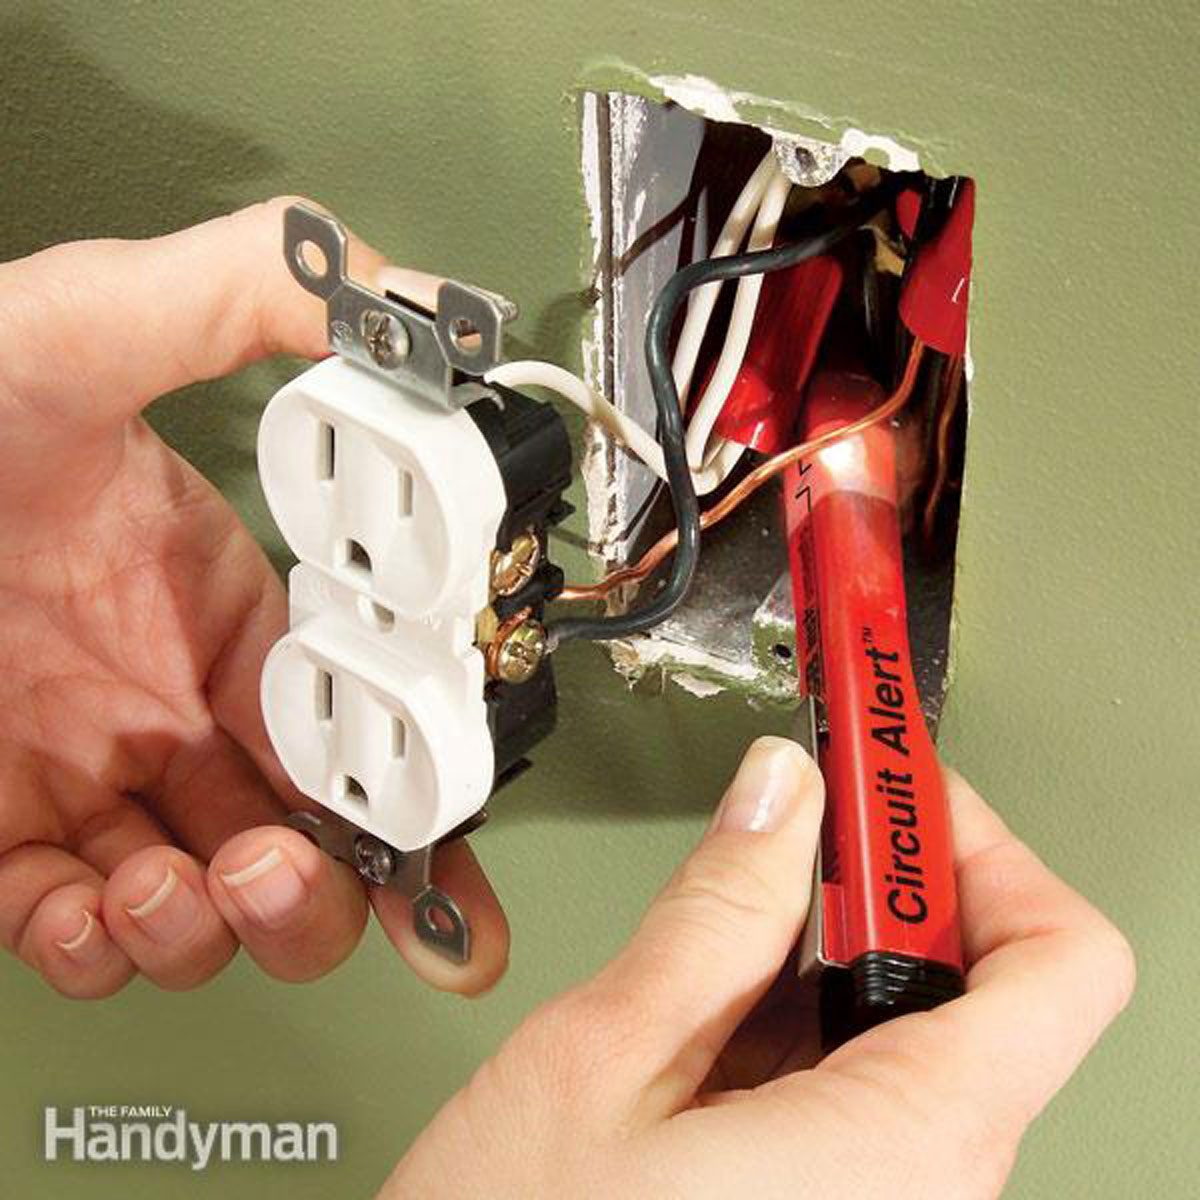 10 Things Every Electrician Really Wants You To Know The Family Main Circuit Breaker Shut Off Tip Ask Builder White Isnt Always Neutral And Black Live